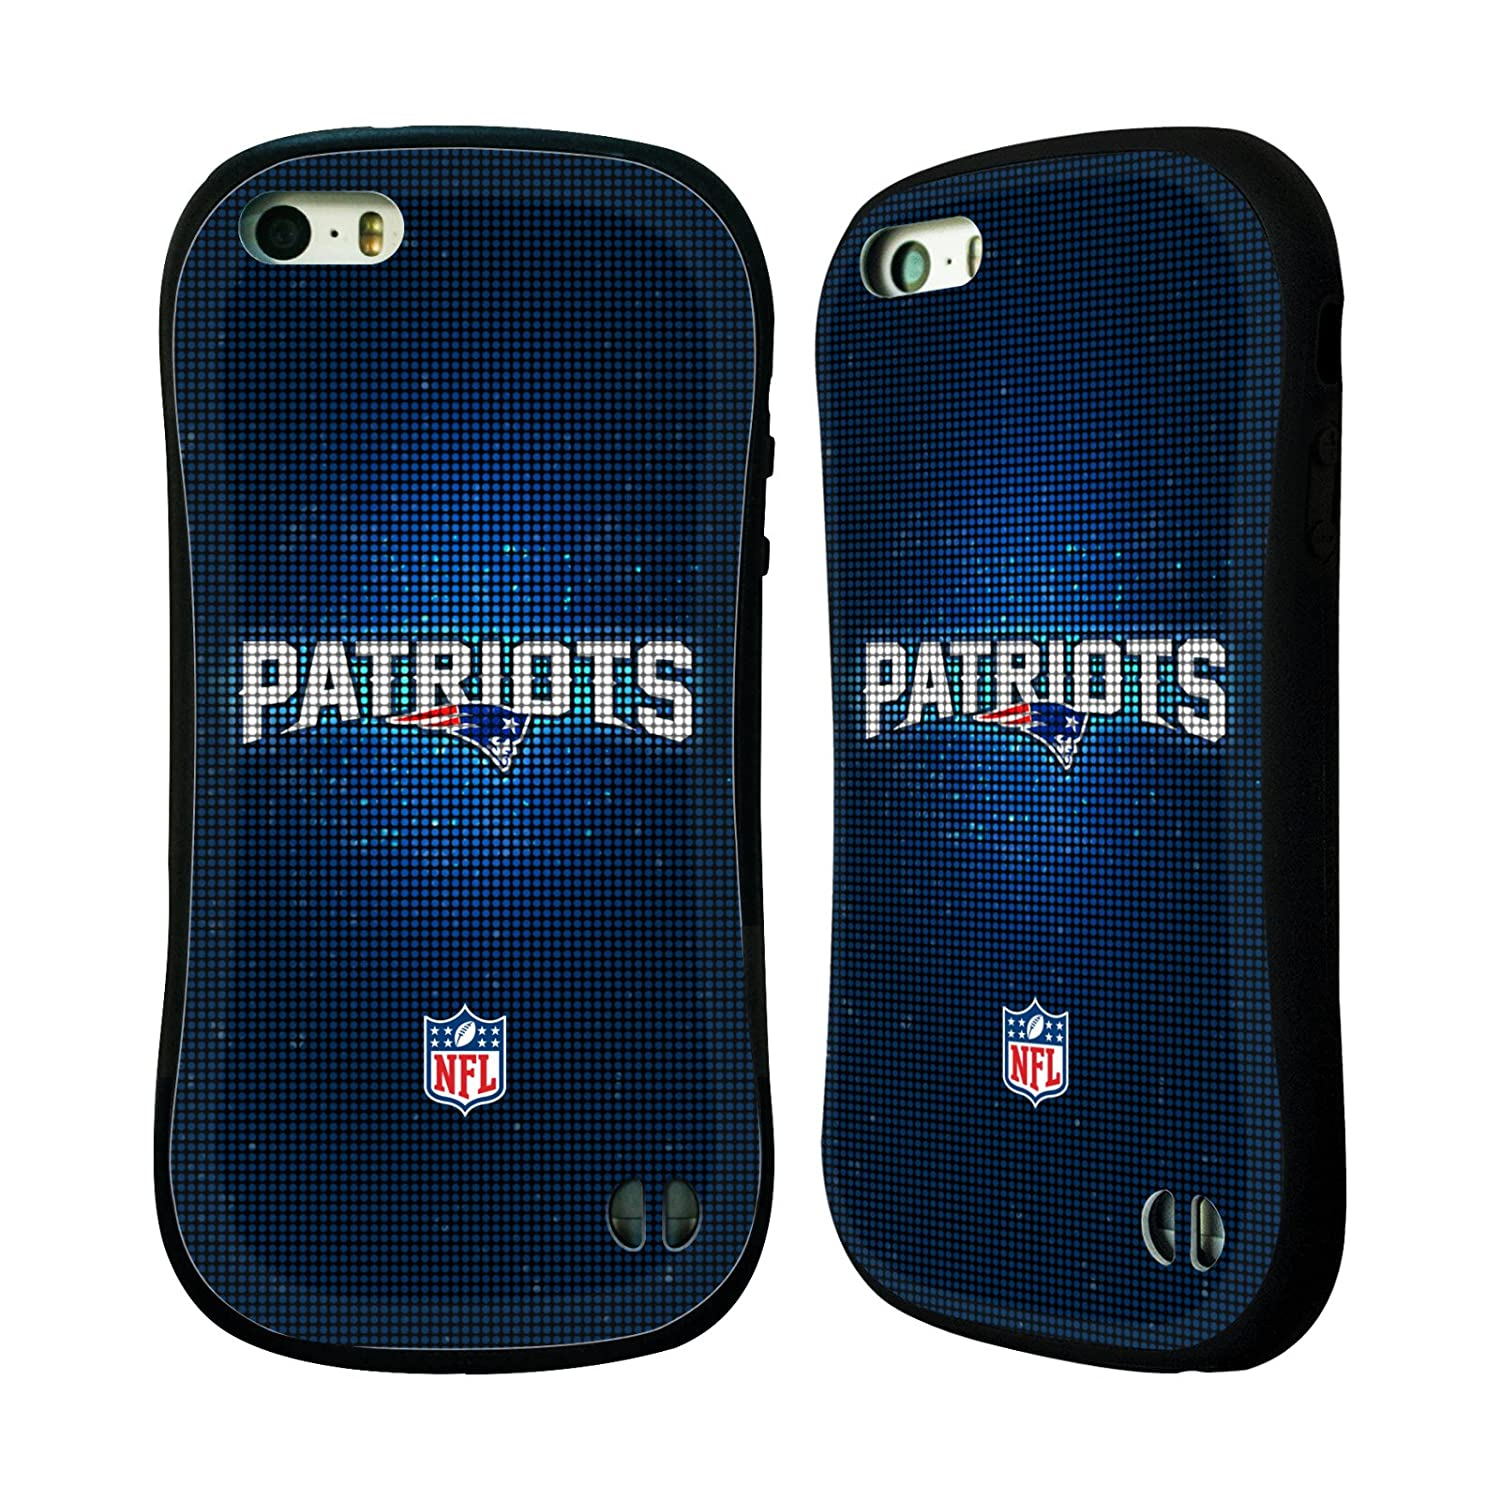 Official NFL LED 2017/18 New England Patriots Hybrid Case for Apple iPhone 5 / 5s / SE